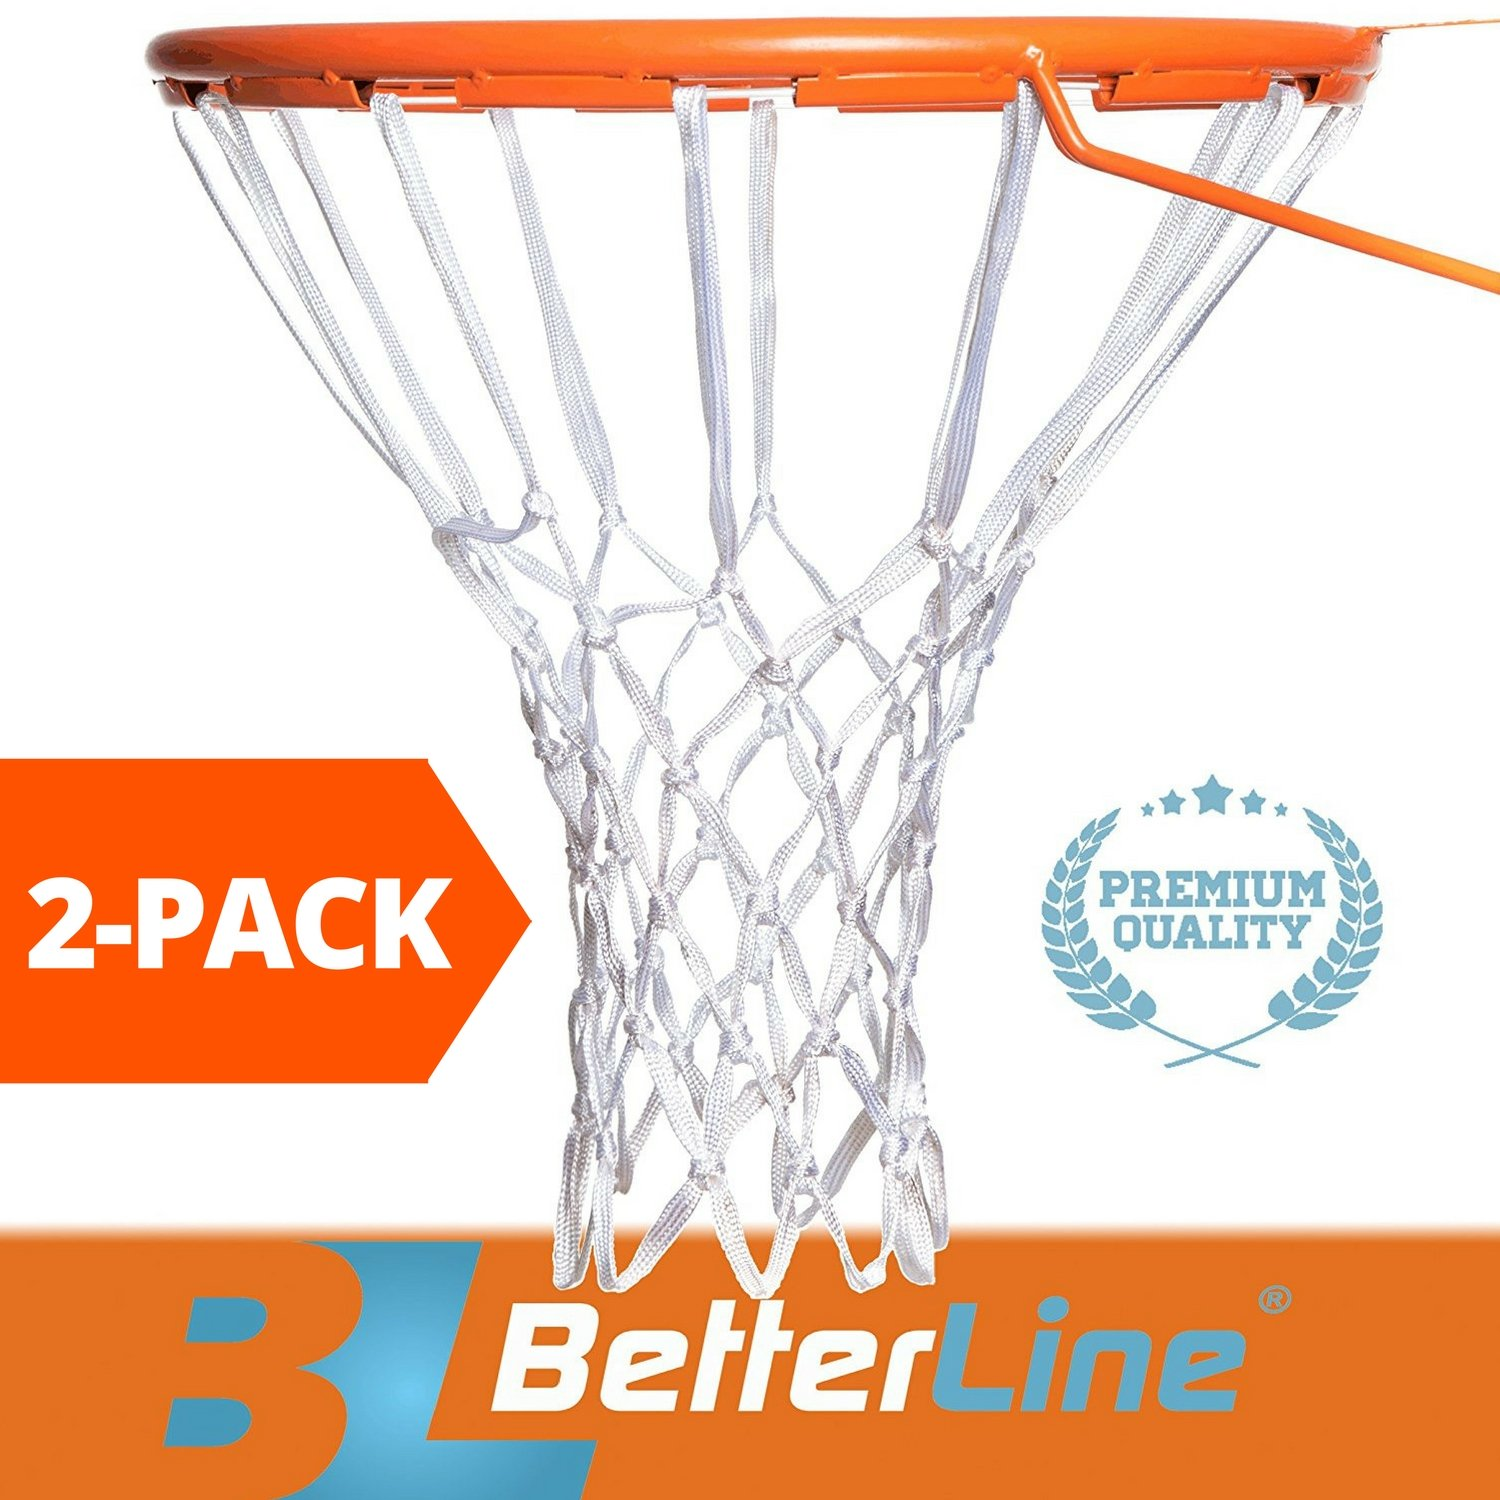 2-Pack Premium Quality Professional Basketball Net All-Weather Heavy Duty | Multi-pack - 12 Loop Nets (White) - 2 Basketball Nets in Pack Better Line ®